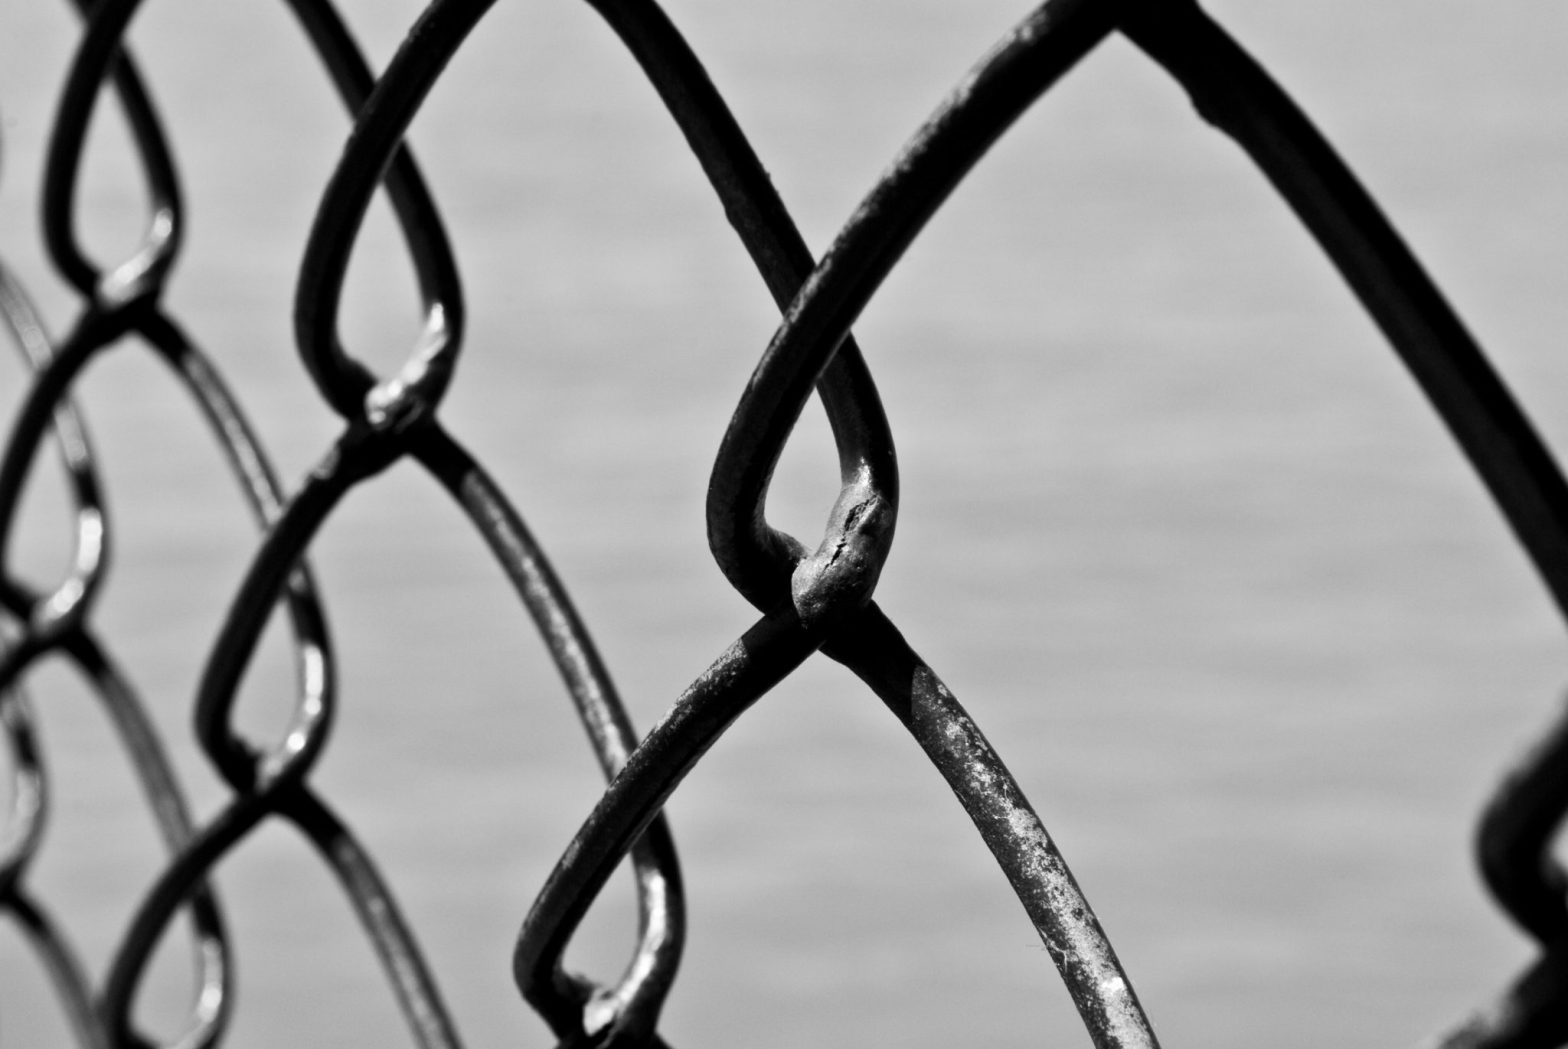 Chain-linked fencing, representing Caledonian Road and urban imprisonment